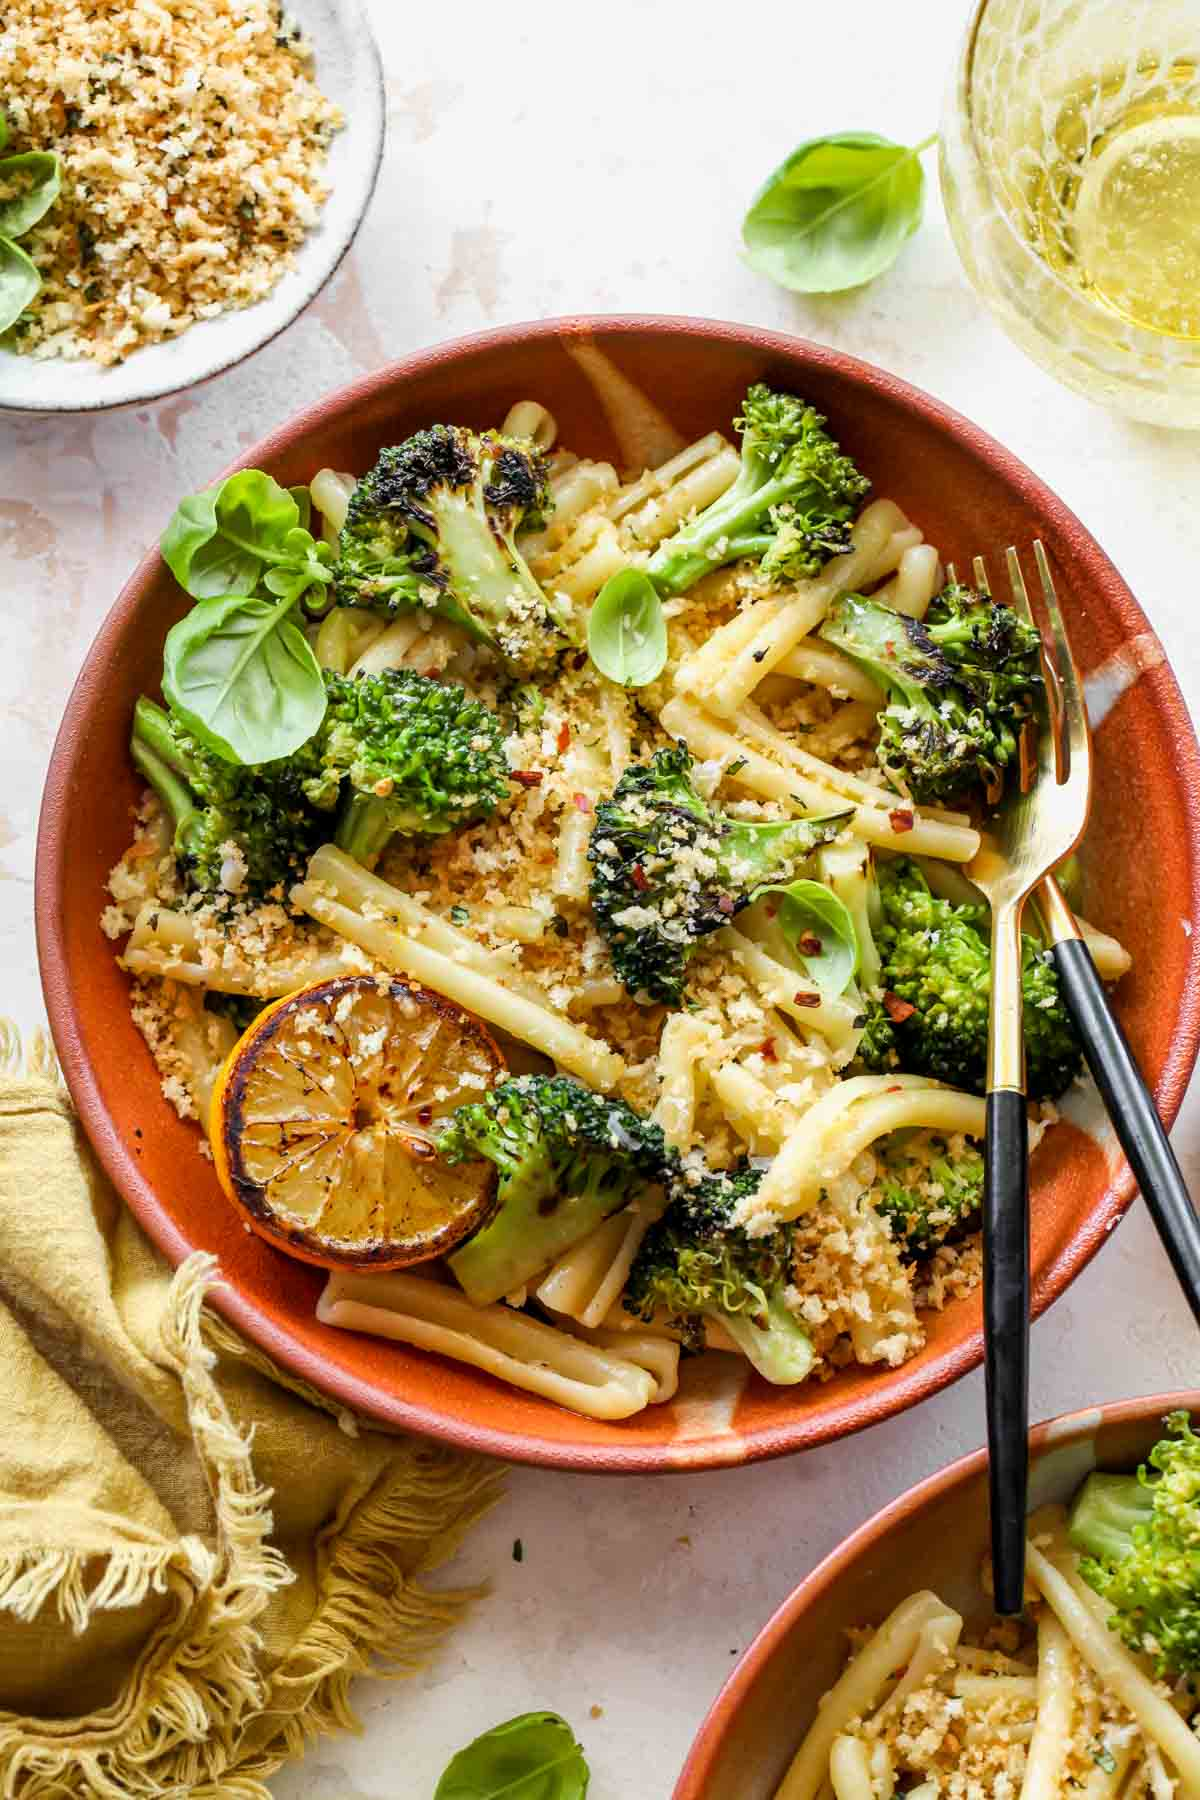 Broccoli pasta in an orange bowl topped with basil breadcrumbs and lemon slice